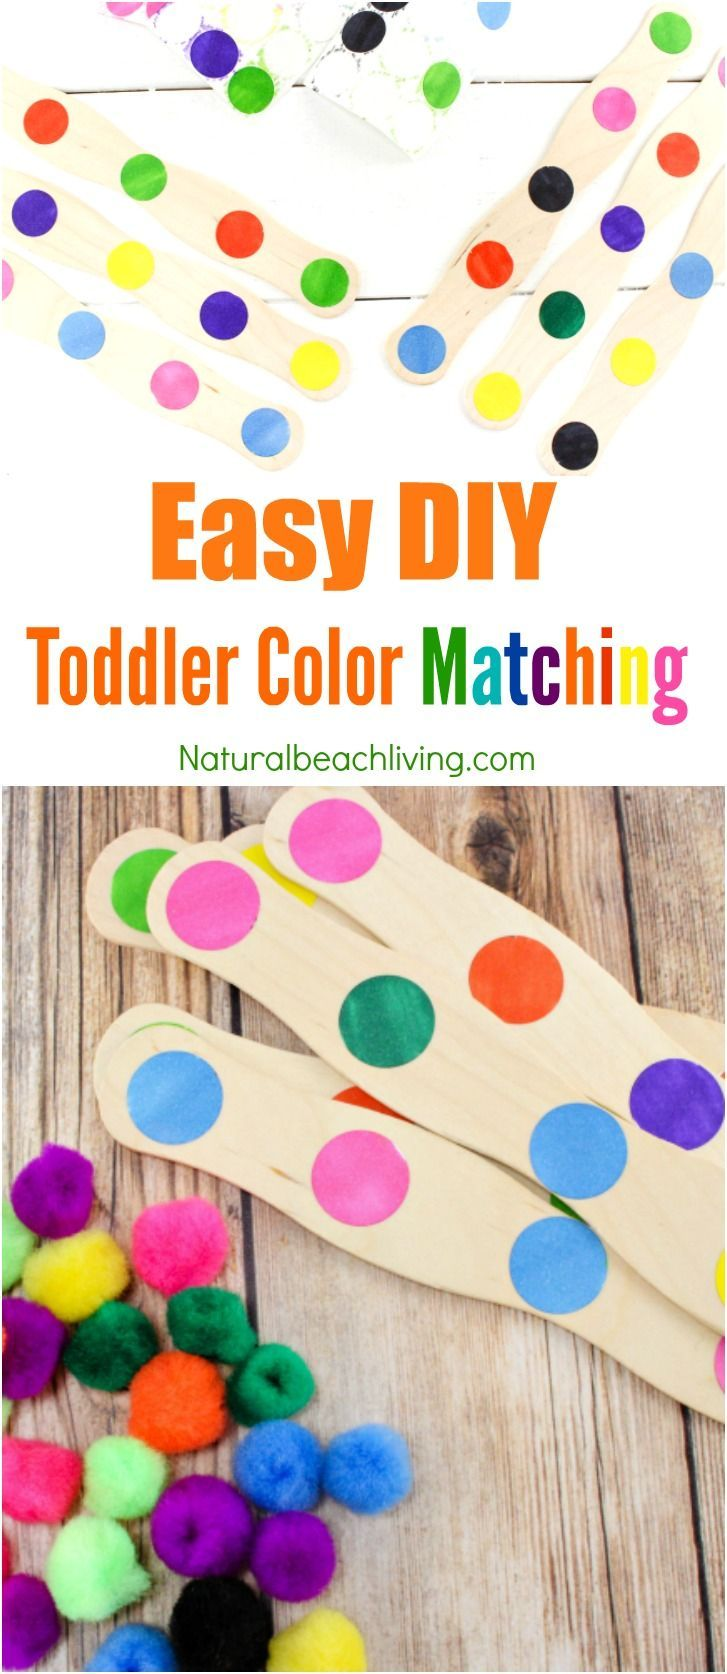 1000 ideas about color activities on pinterest preschool color activities preschool colors. Black Bedroom Furniture Sets. Home Design Ideas